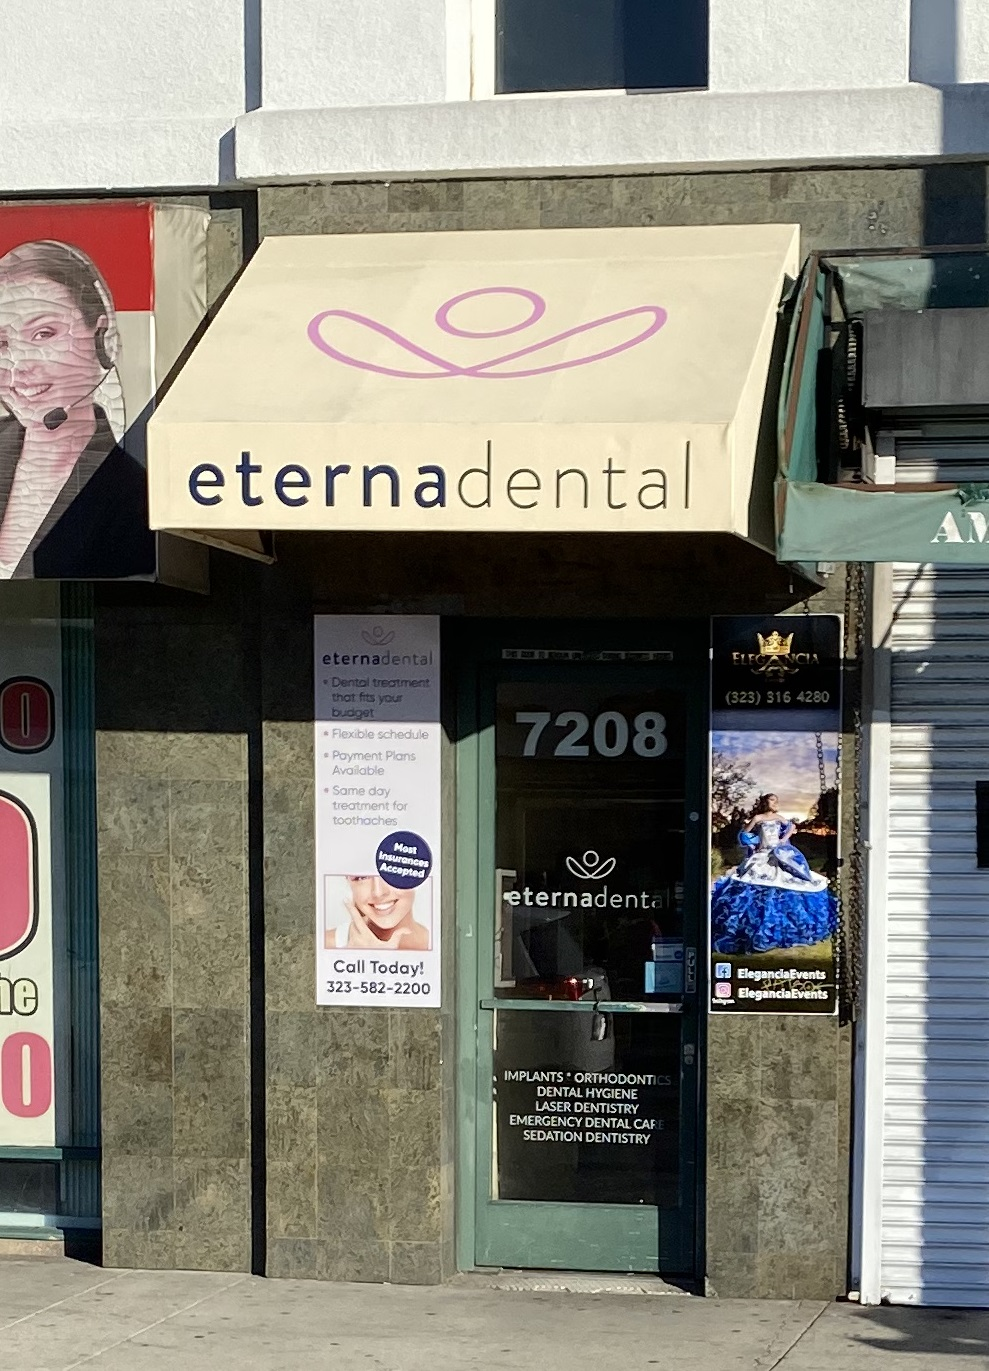 Part of our business sign package and office design package for Eternadental. This is an awning sign for their front door.